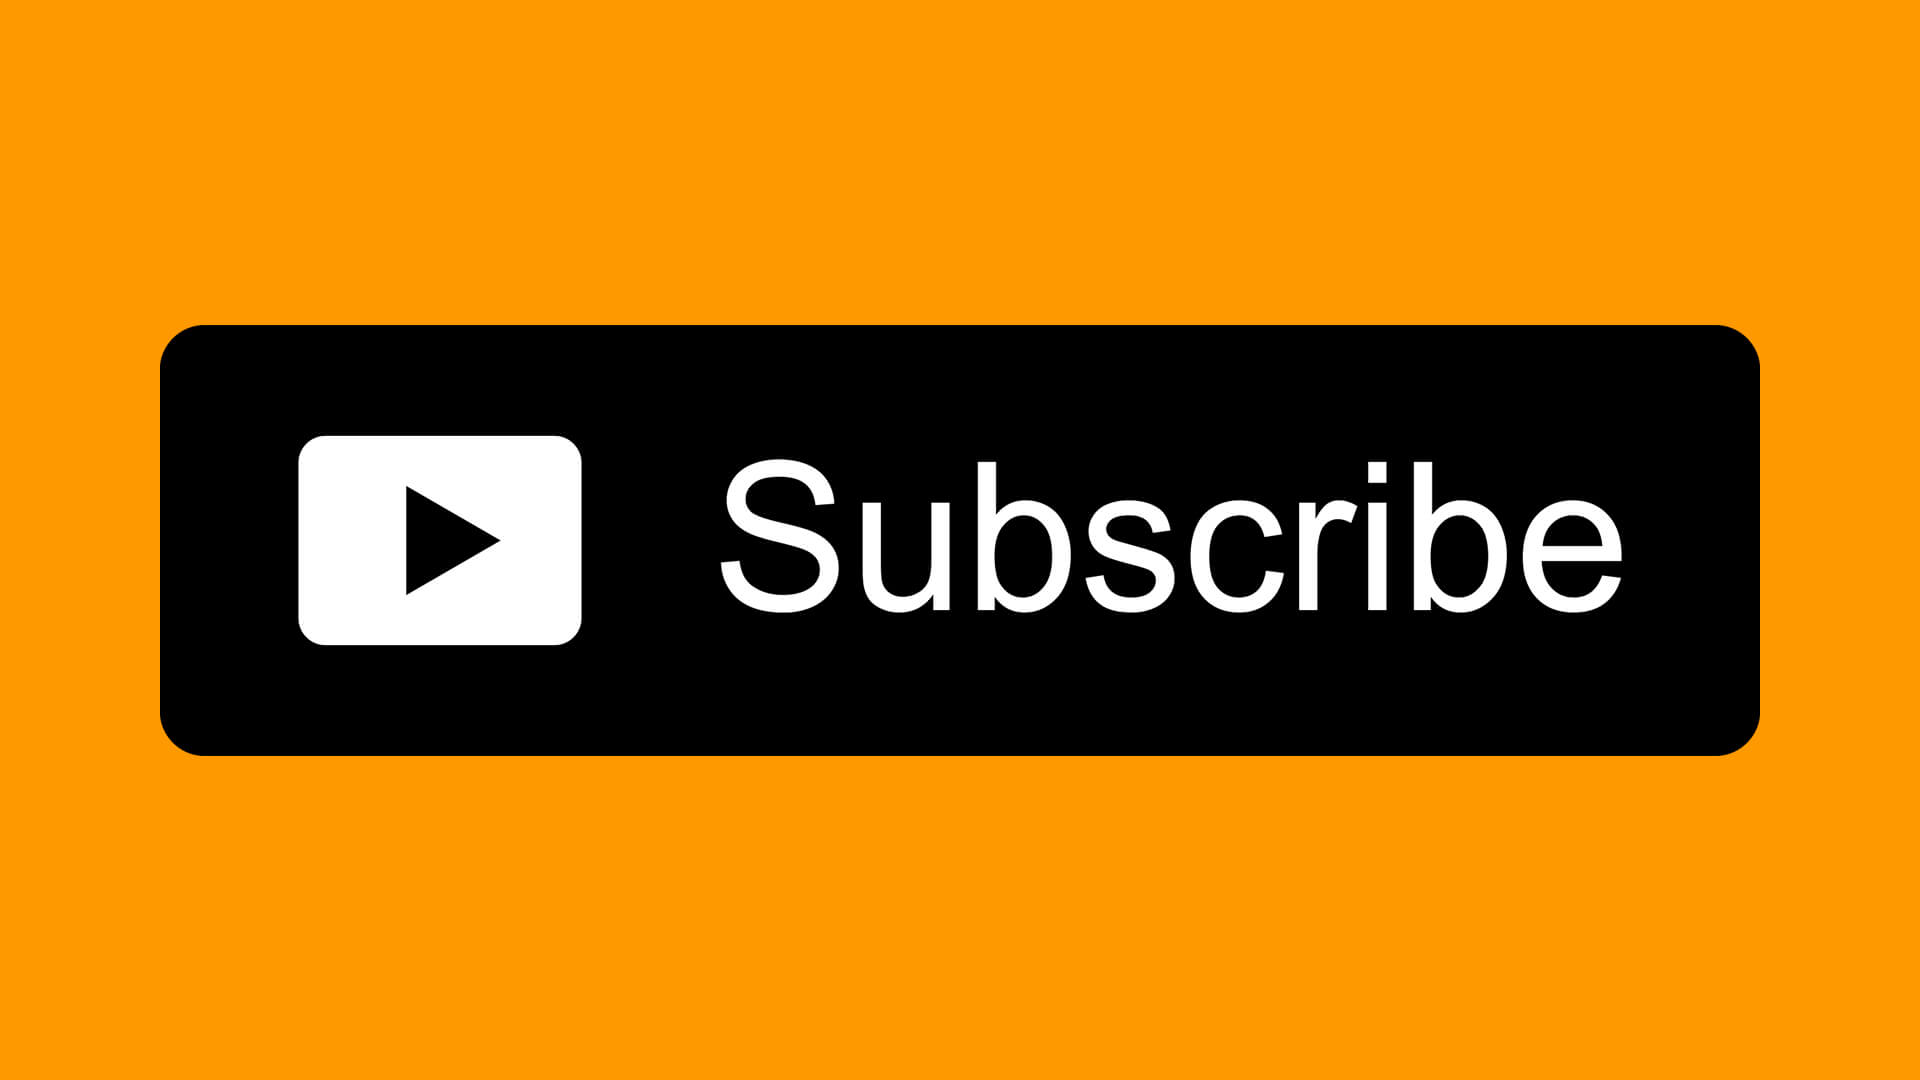 Free-Black-YouTube-Subscribe-Button-PNG-Download-By-AlfredoCreates-2